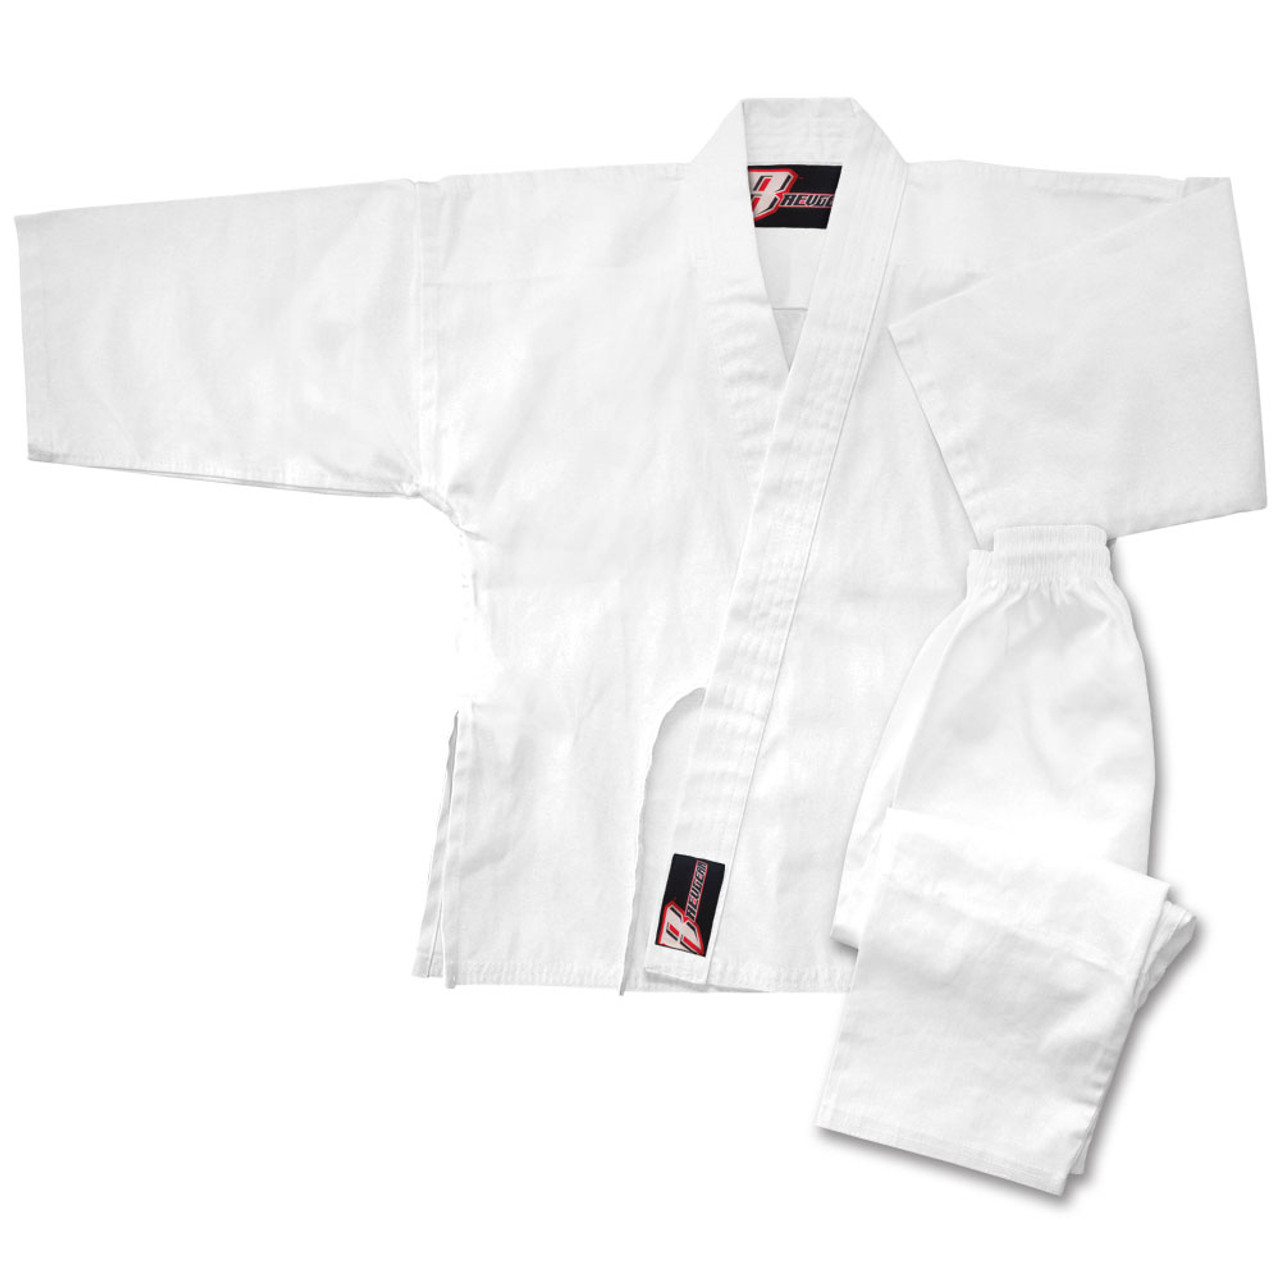 7oz Lightweight Karate Student Uniform